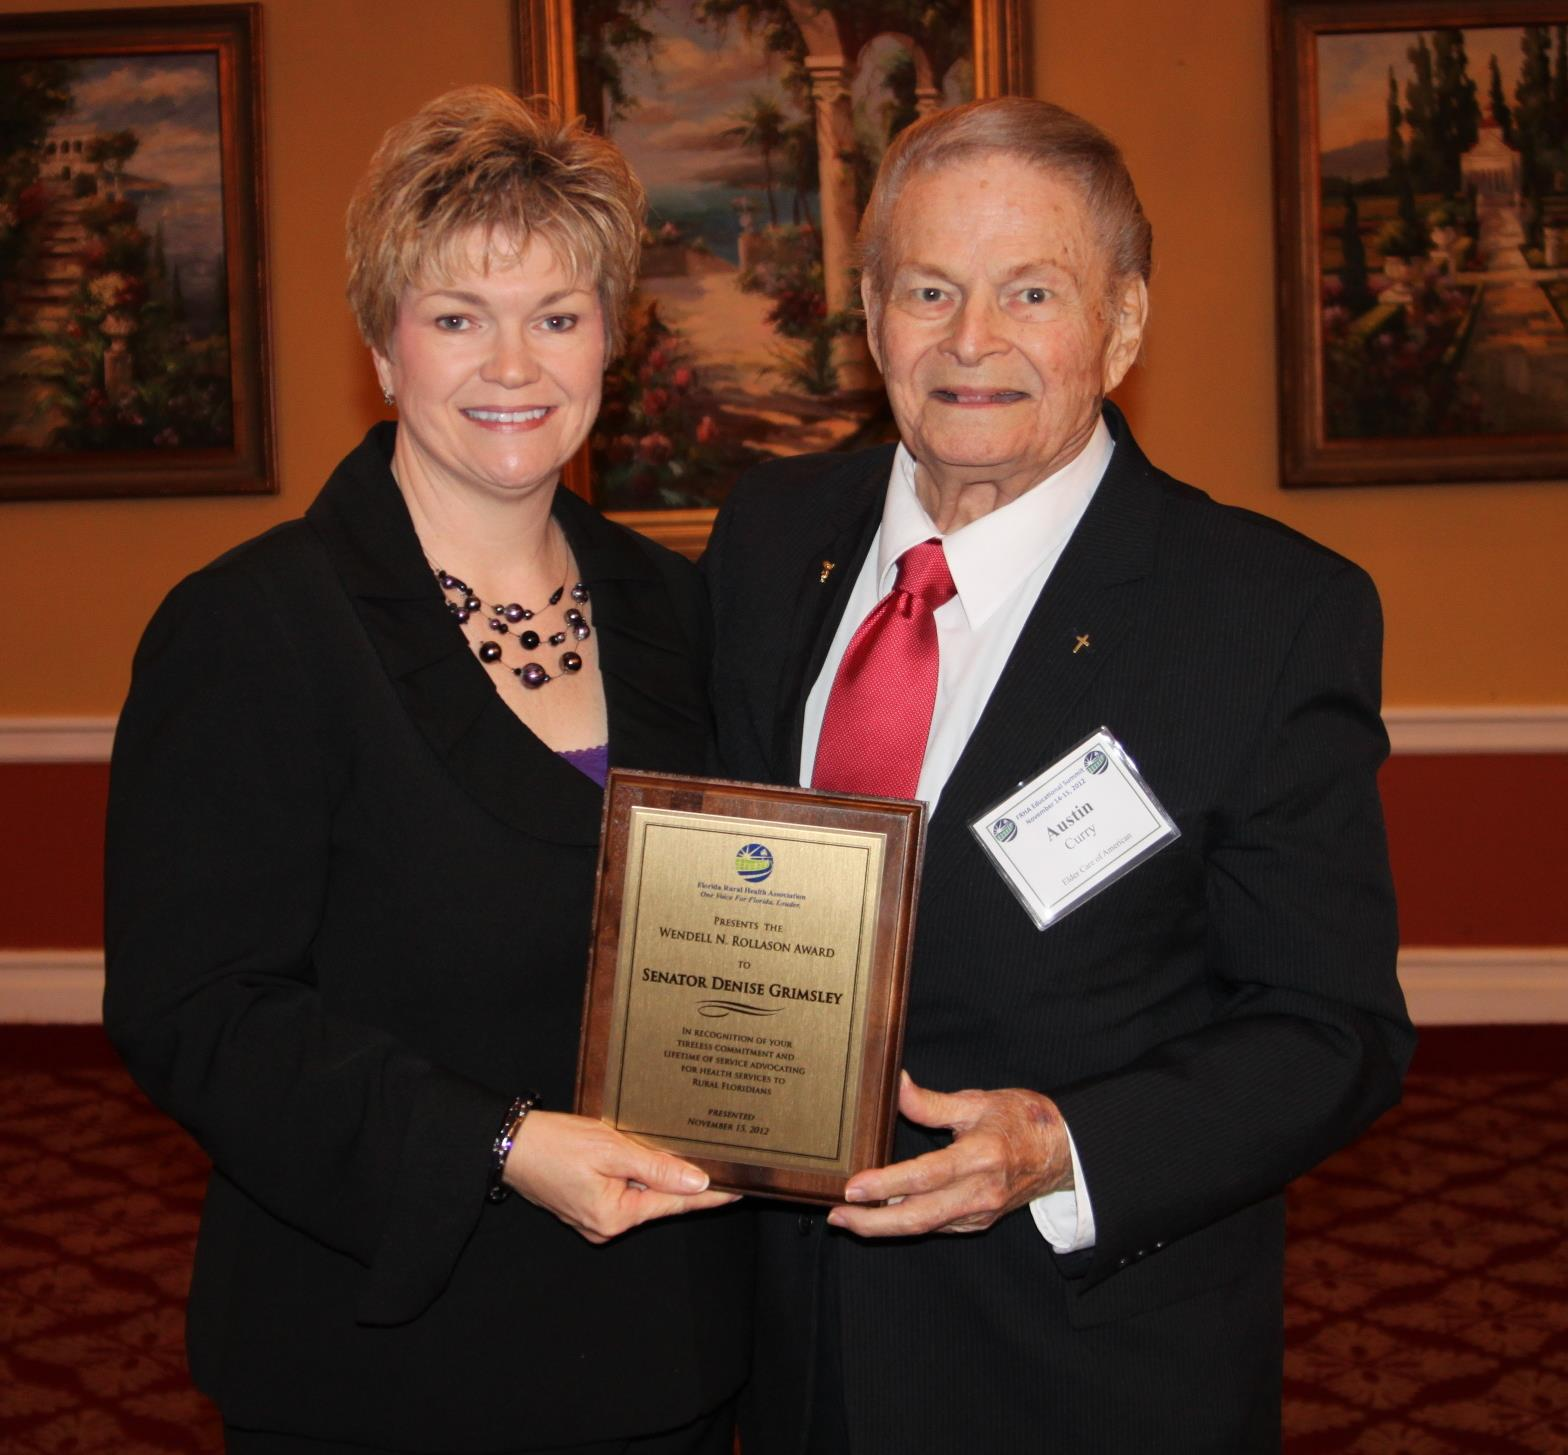 Marty Mielke, chief legislative assistant to Senator Denise Grimsley, accepted the Wendell Rollason Award on behalf of Senator Grimsley during the 2012 FRHA Educational Summit. Mielke is pictured with Austin Curry, executive director of Elder Care Advocacy of Florida, who nominated Grimsley for the award.